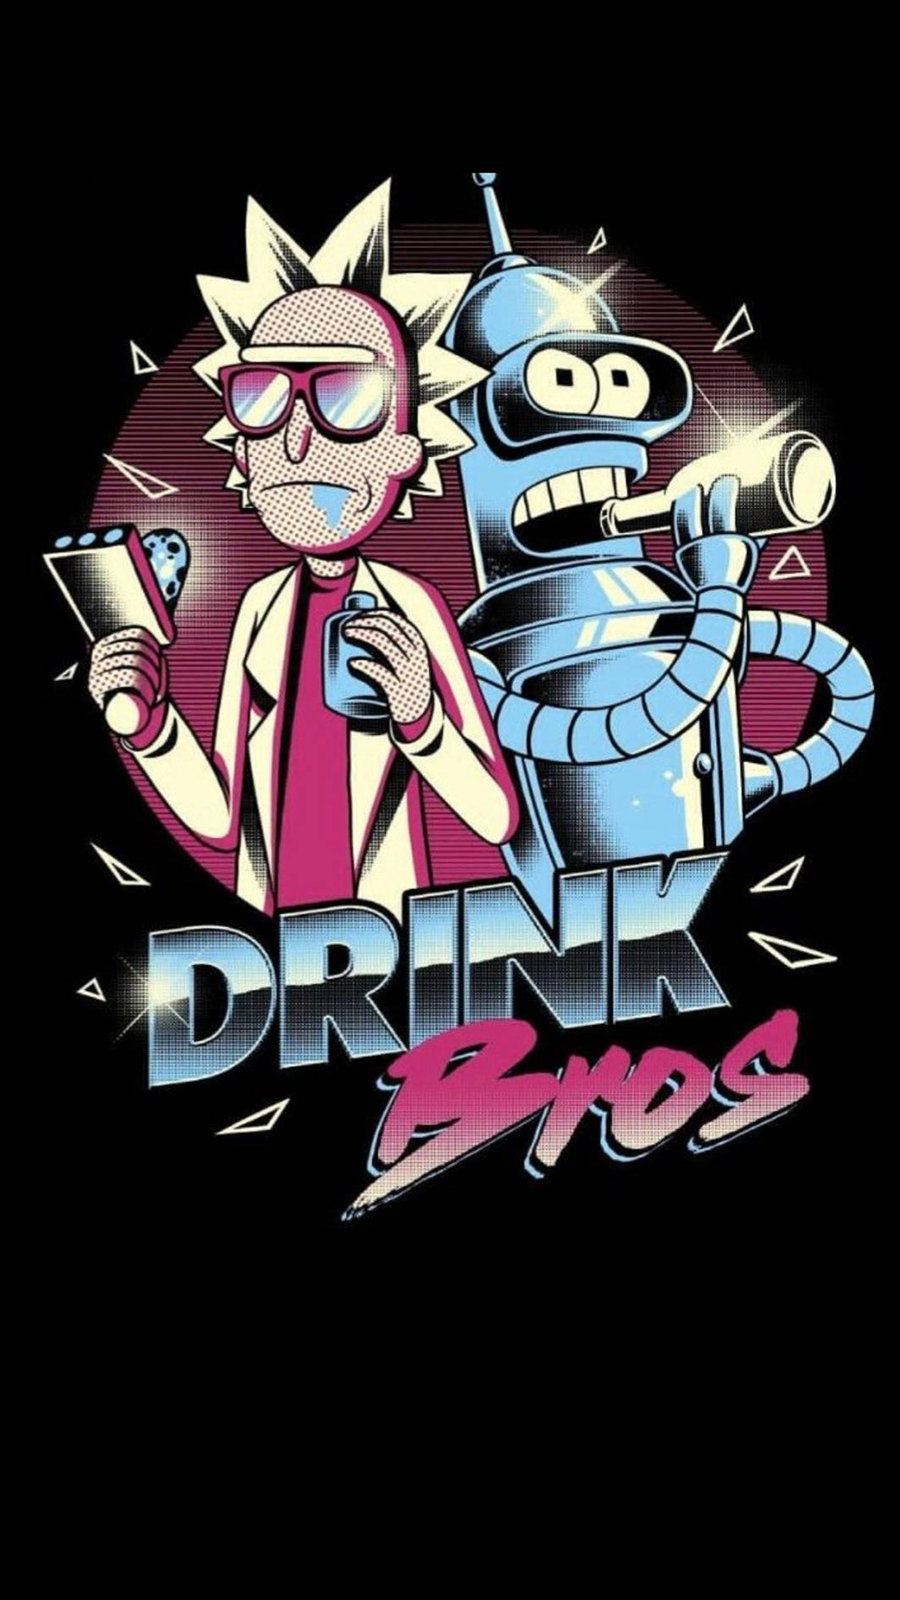 Rick & Bender Wallpapers Now Download For Your Device